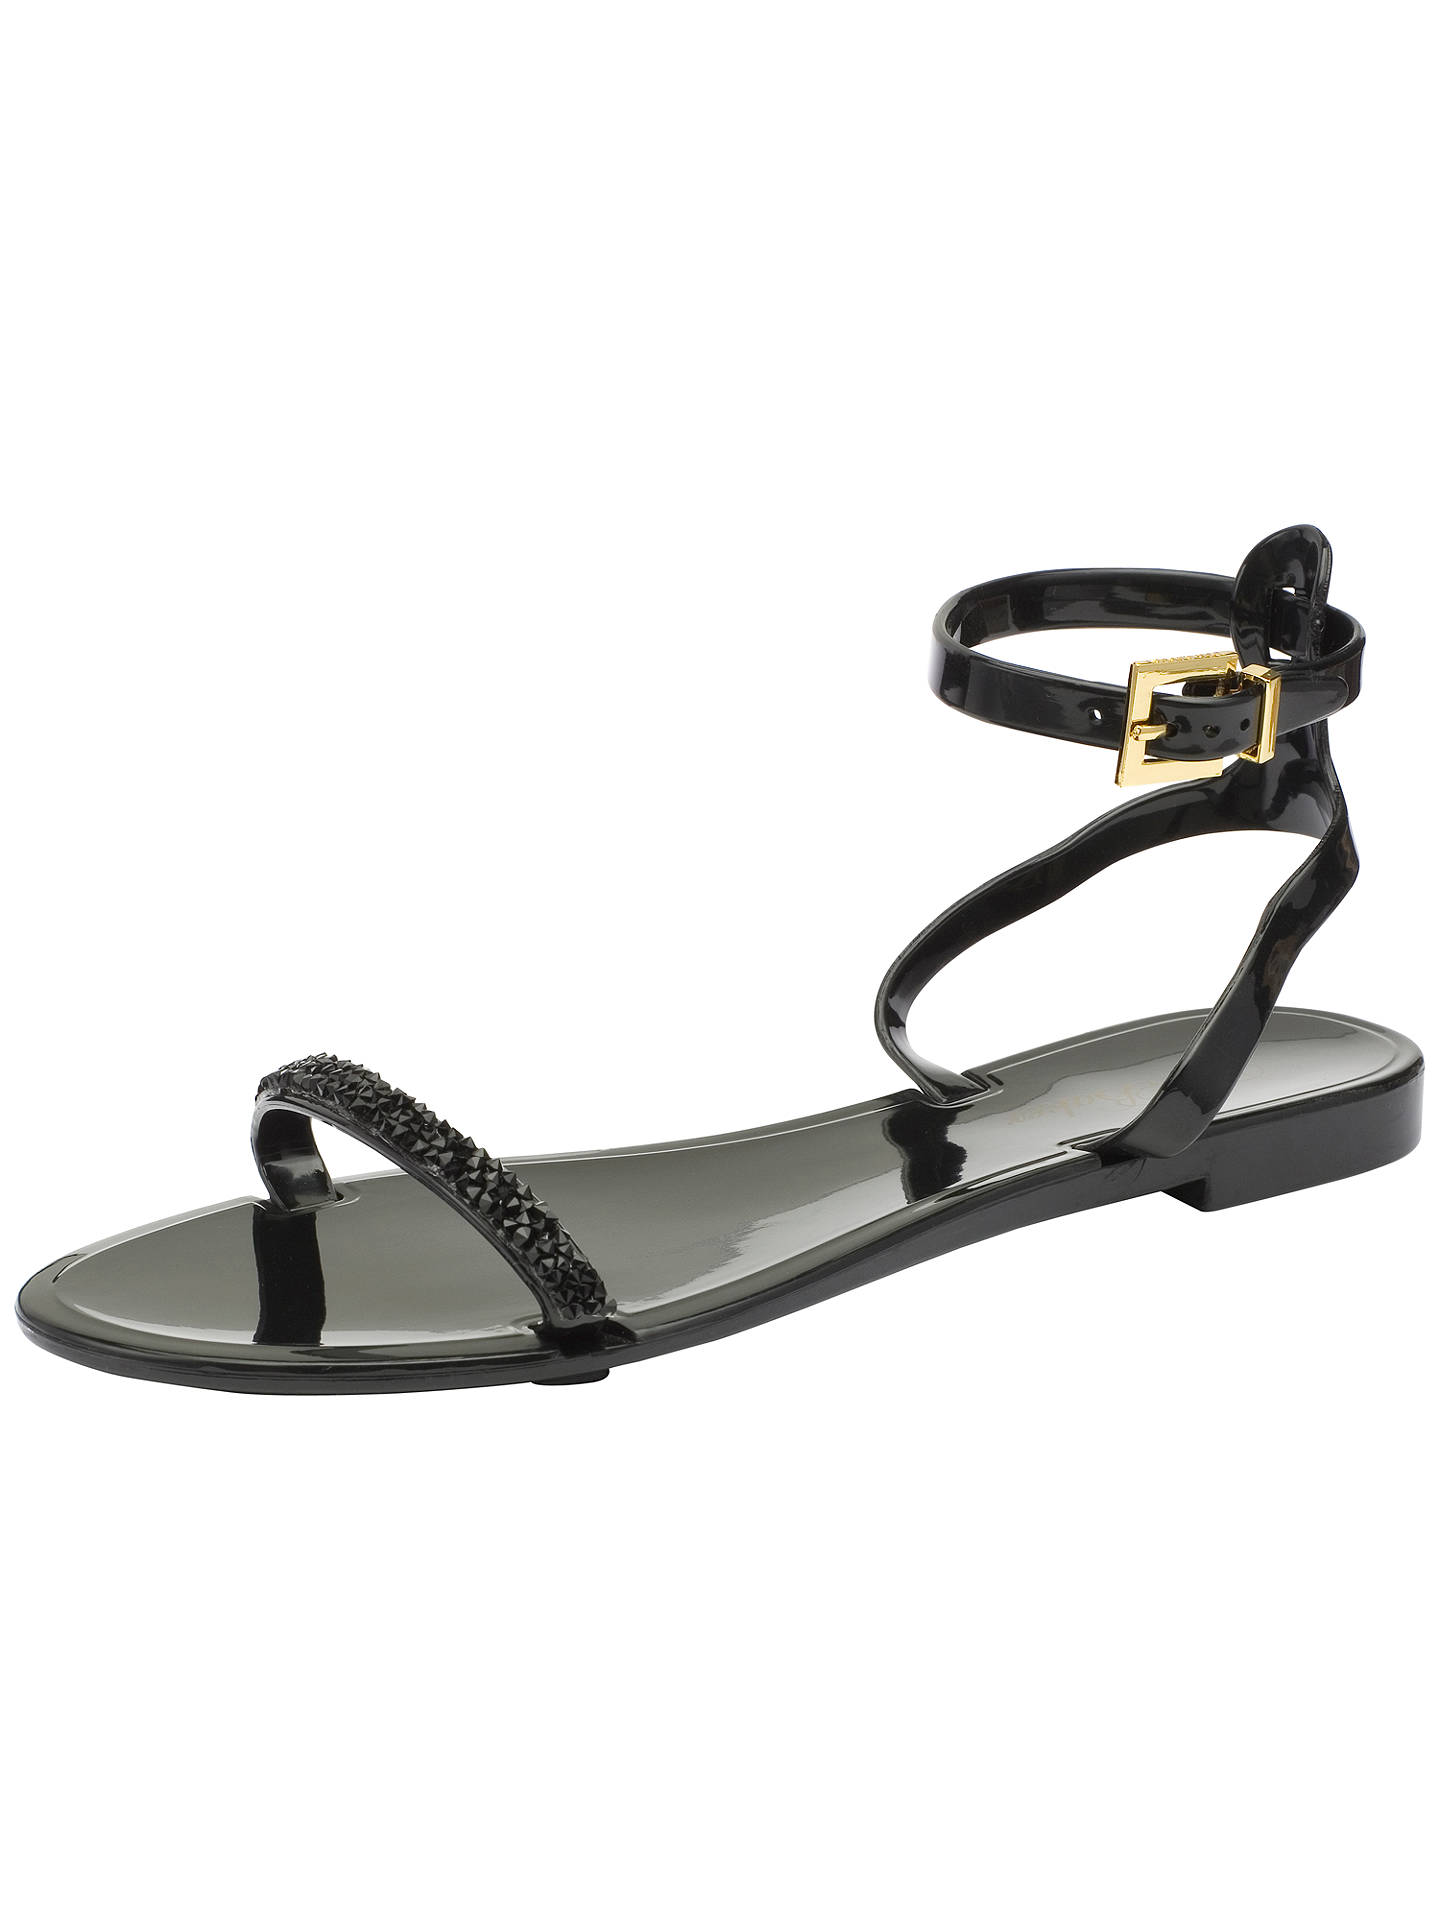 f9f7278d2 Buy Ted Baker Amorpha Ankle Strap Jelly Sandals